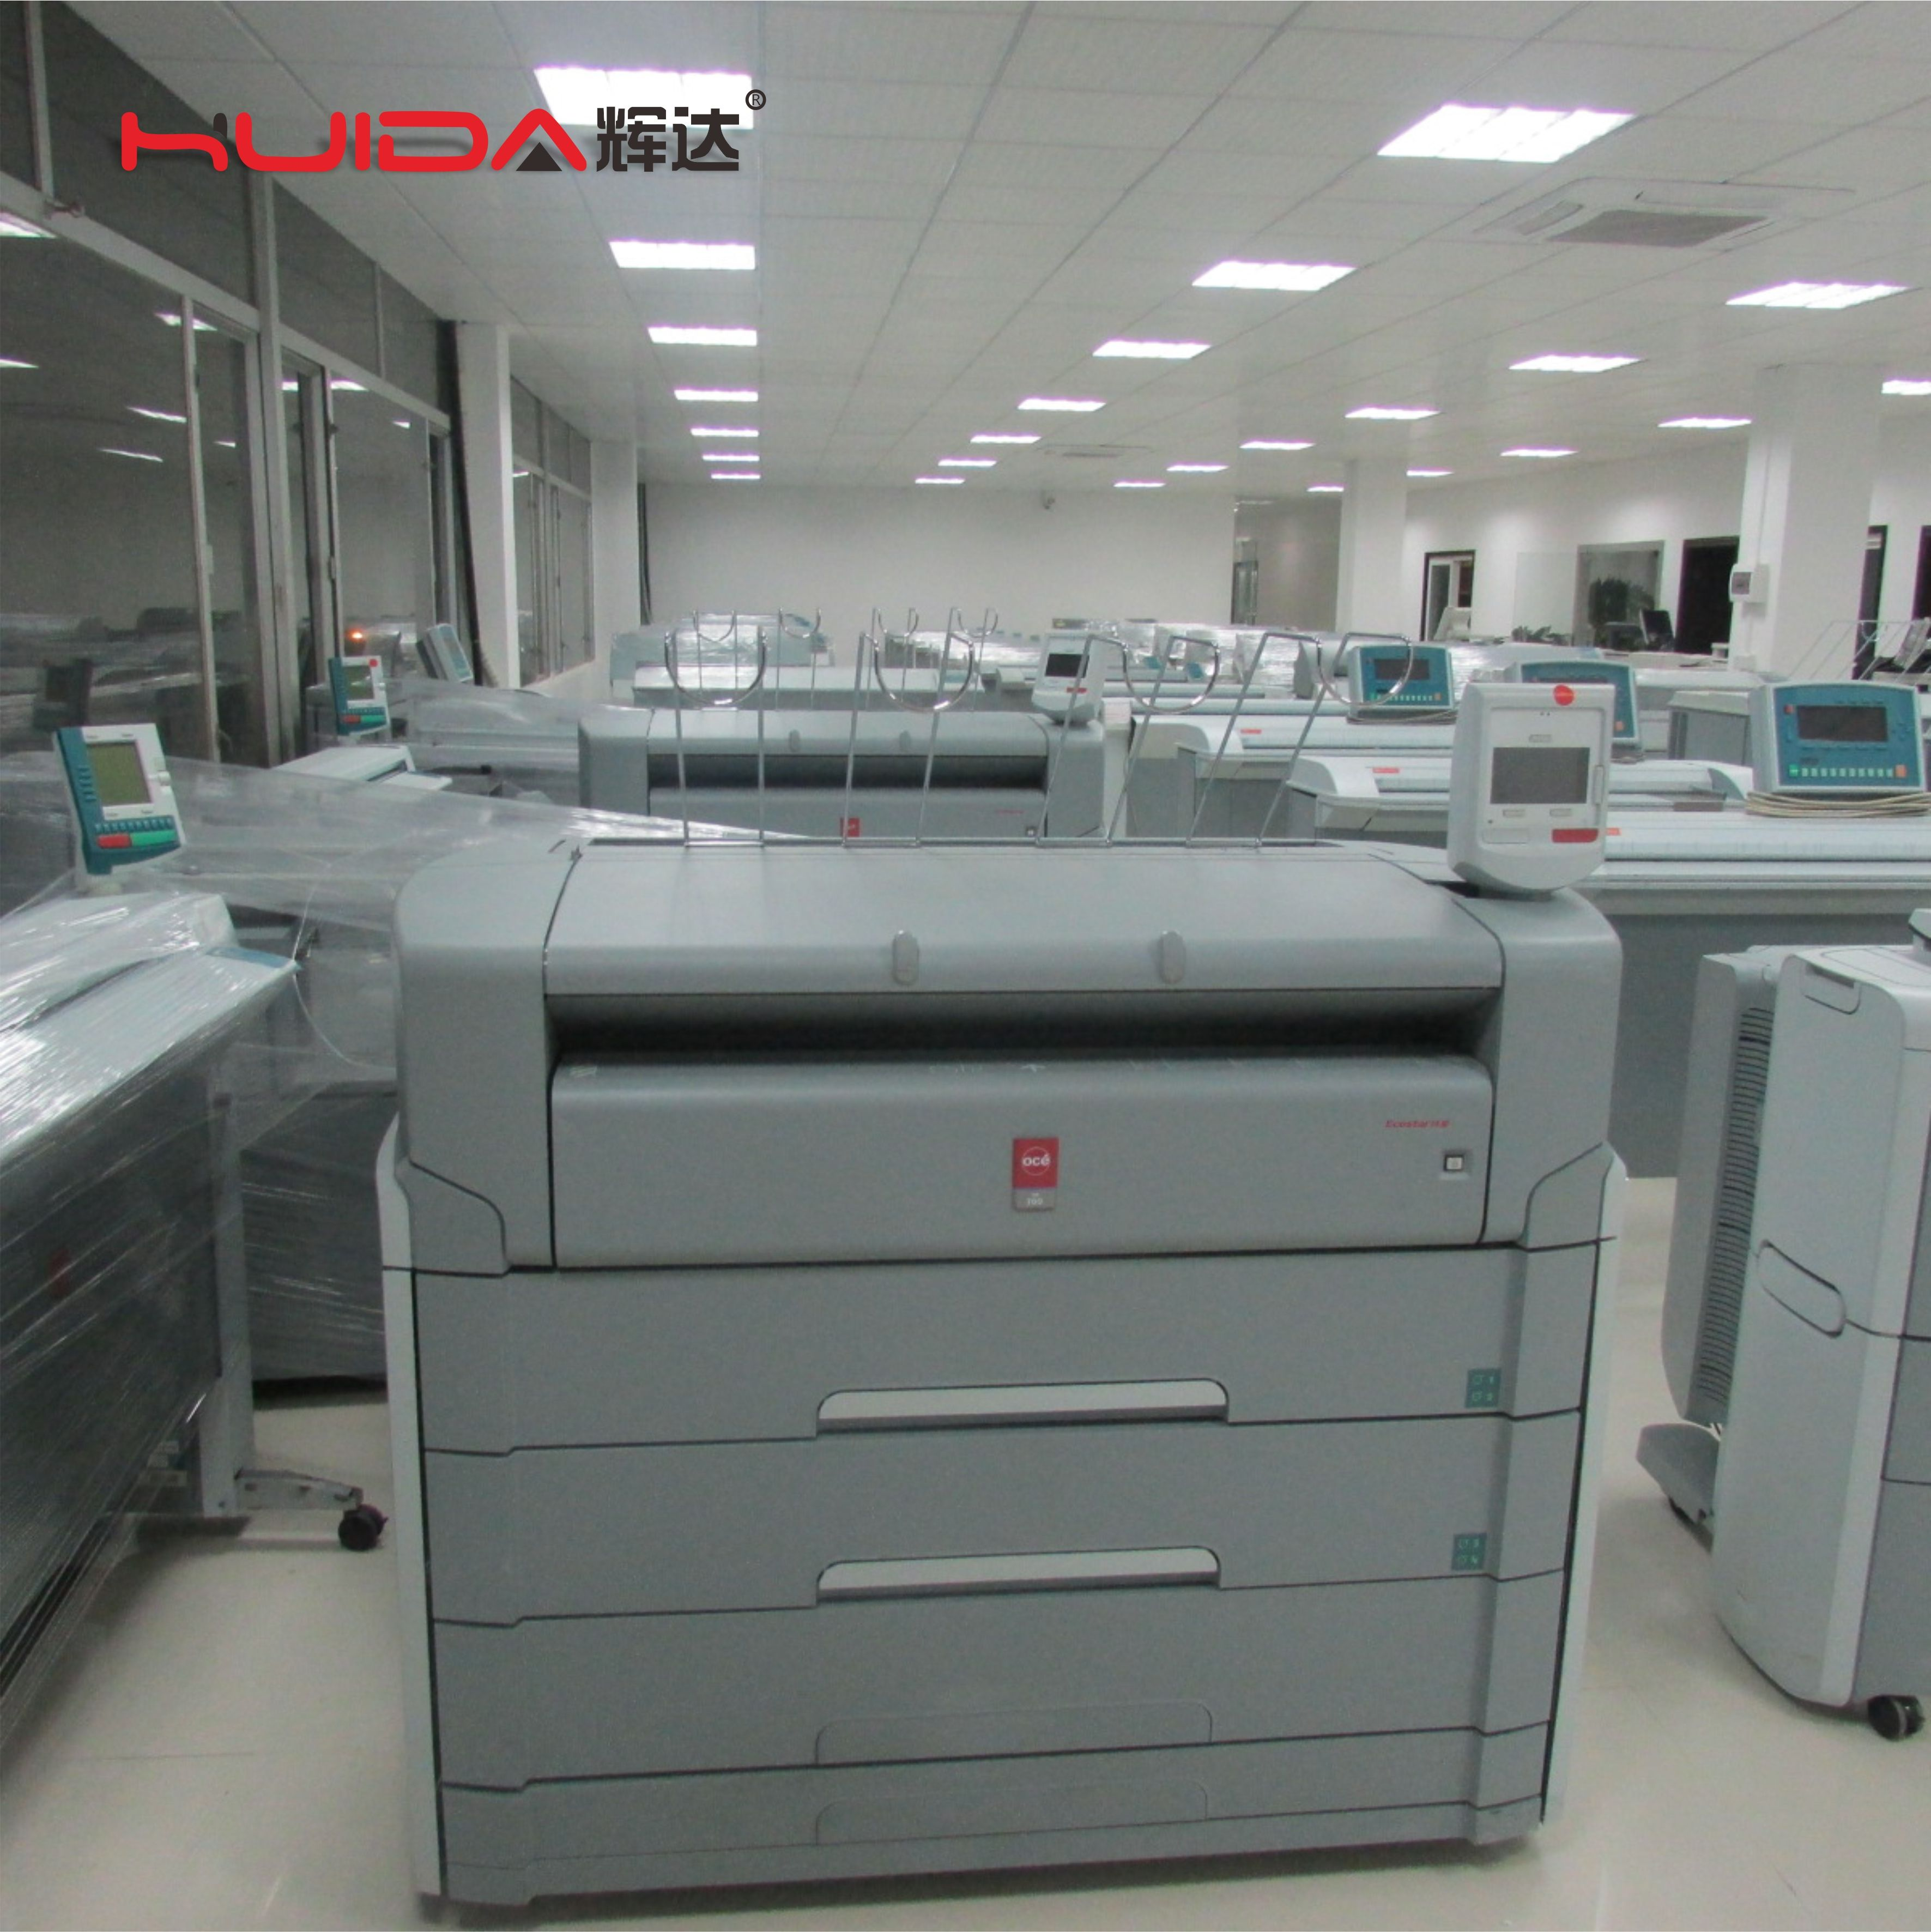 High speed production wide format used printer for oce tds 750